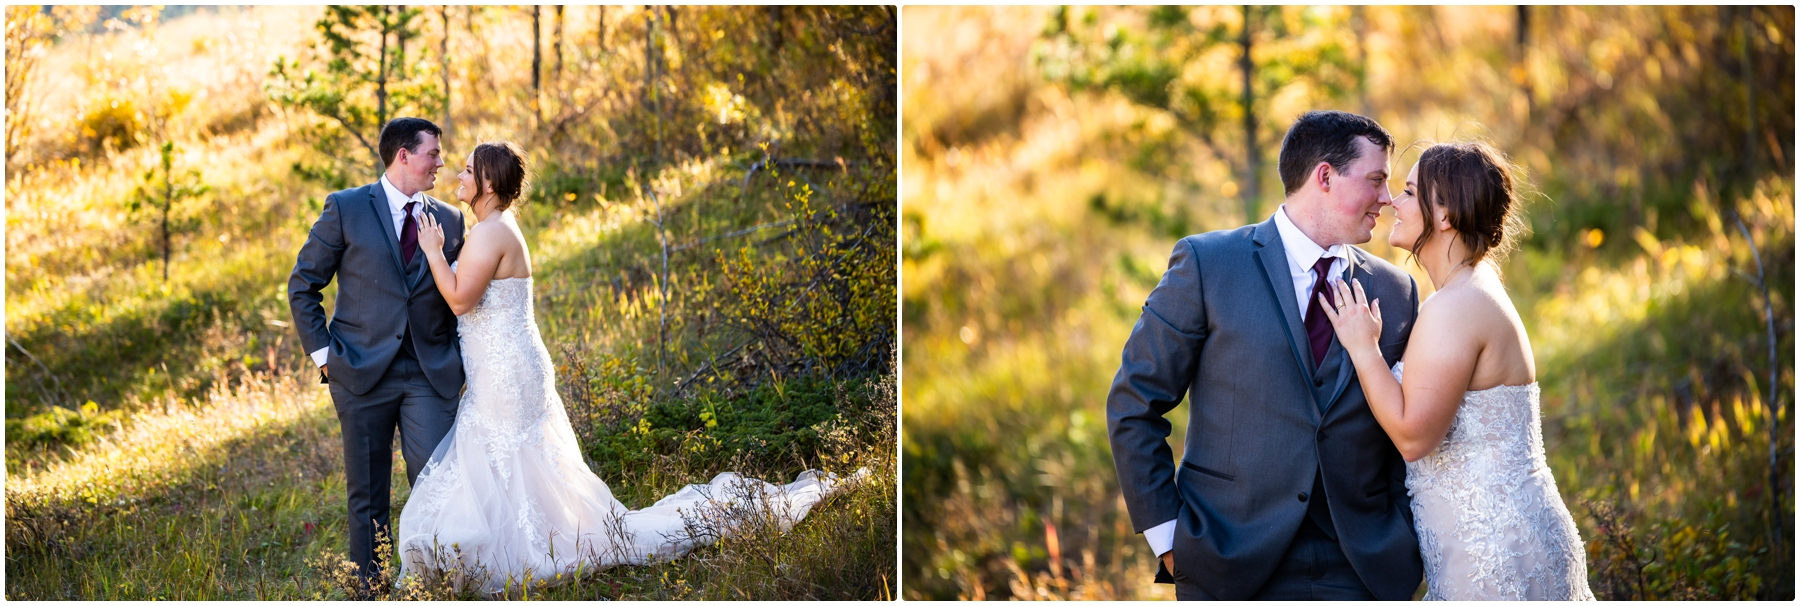 Canmore Wedding Photographers- Rocky Mountain Intimate Elopement Photographers